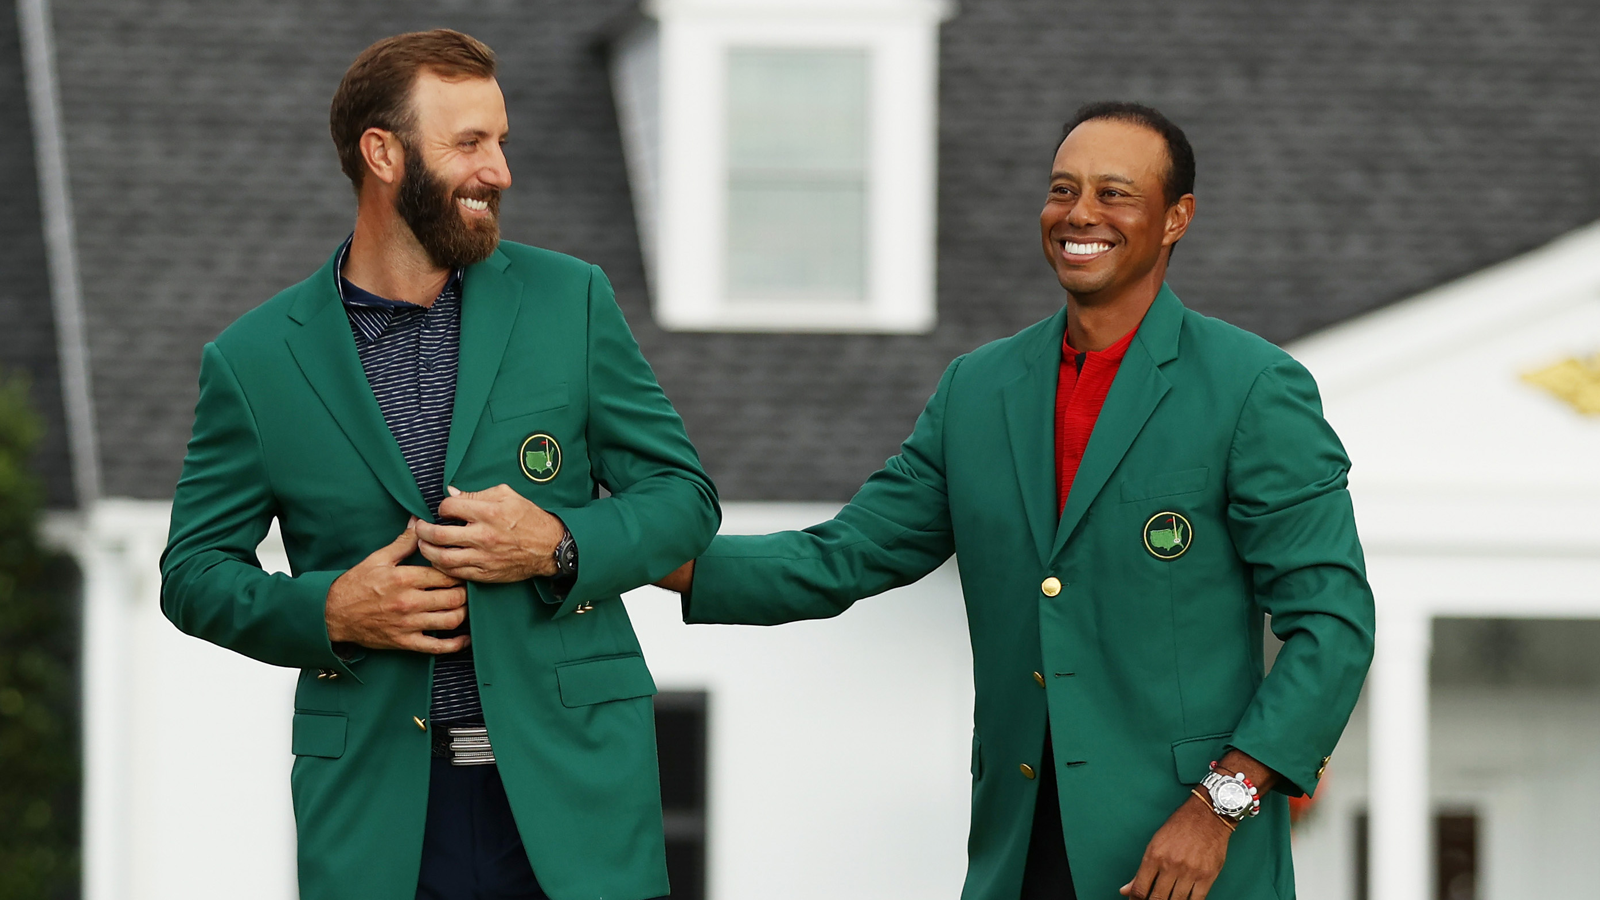 Tiger woods presents Dustin Johnson with the green jacket at the 84th Masters.  (Photo by Patrick Smith/Getty Images)